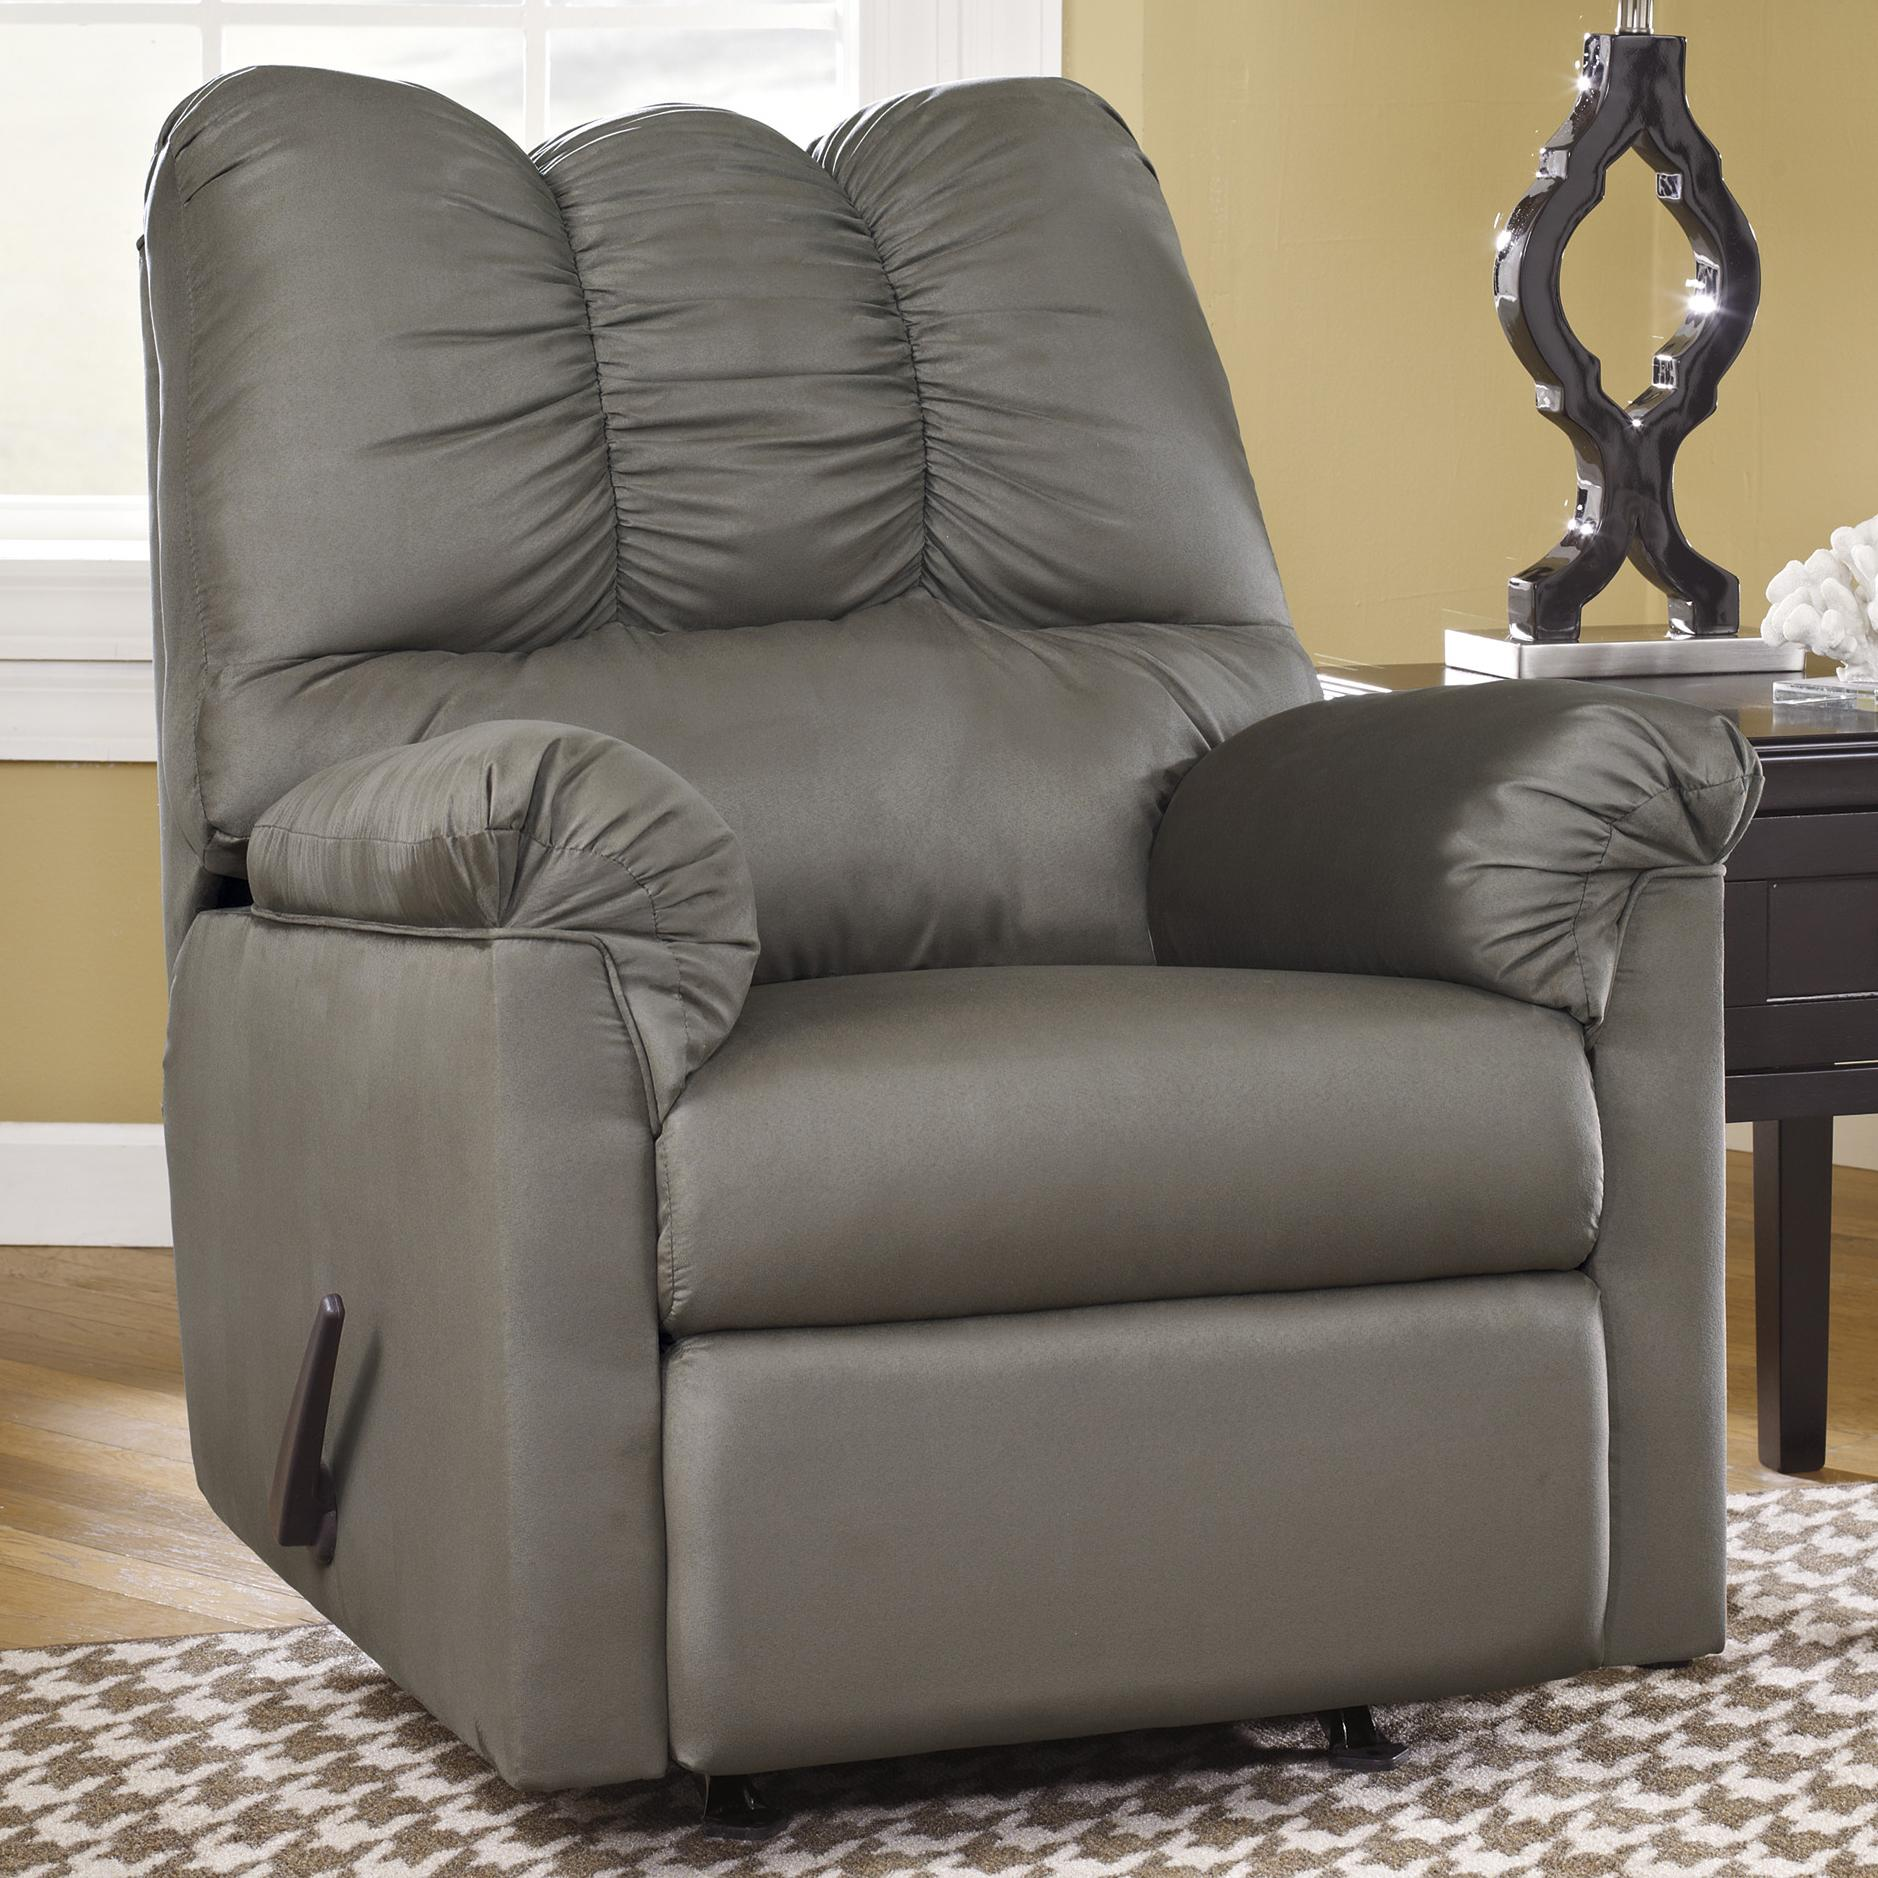 Signature Design by Ashley Darcy - Cobblestone Rocker Recliner - Item Number: 7500525